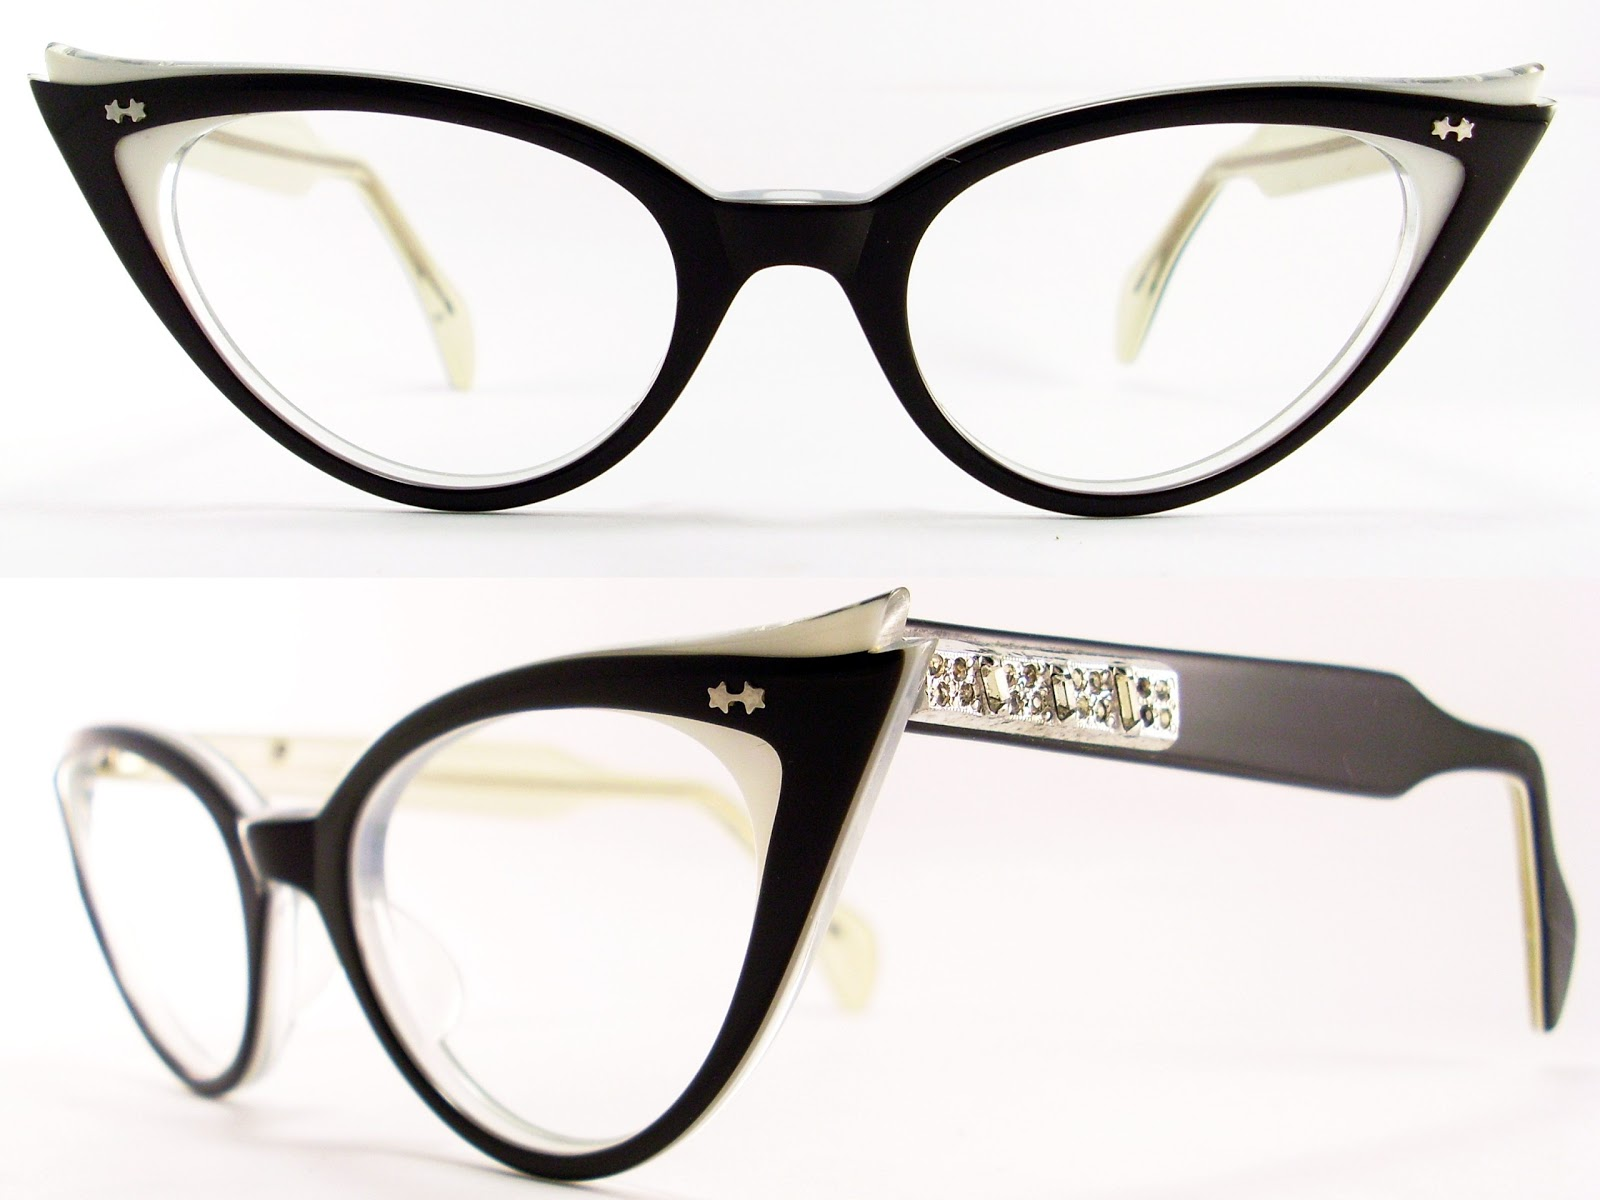 Eyeglass Frames For Large Eyes : Vintage Eyeglasses Frames Eyewear Sunglasses 50S: January 2011